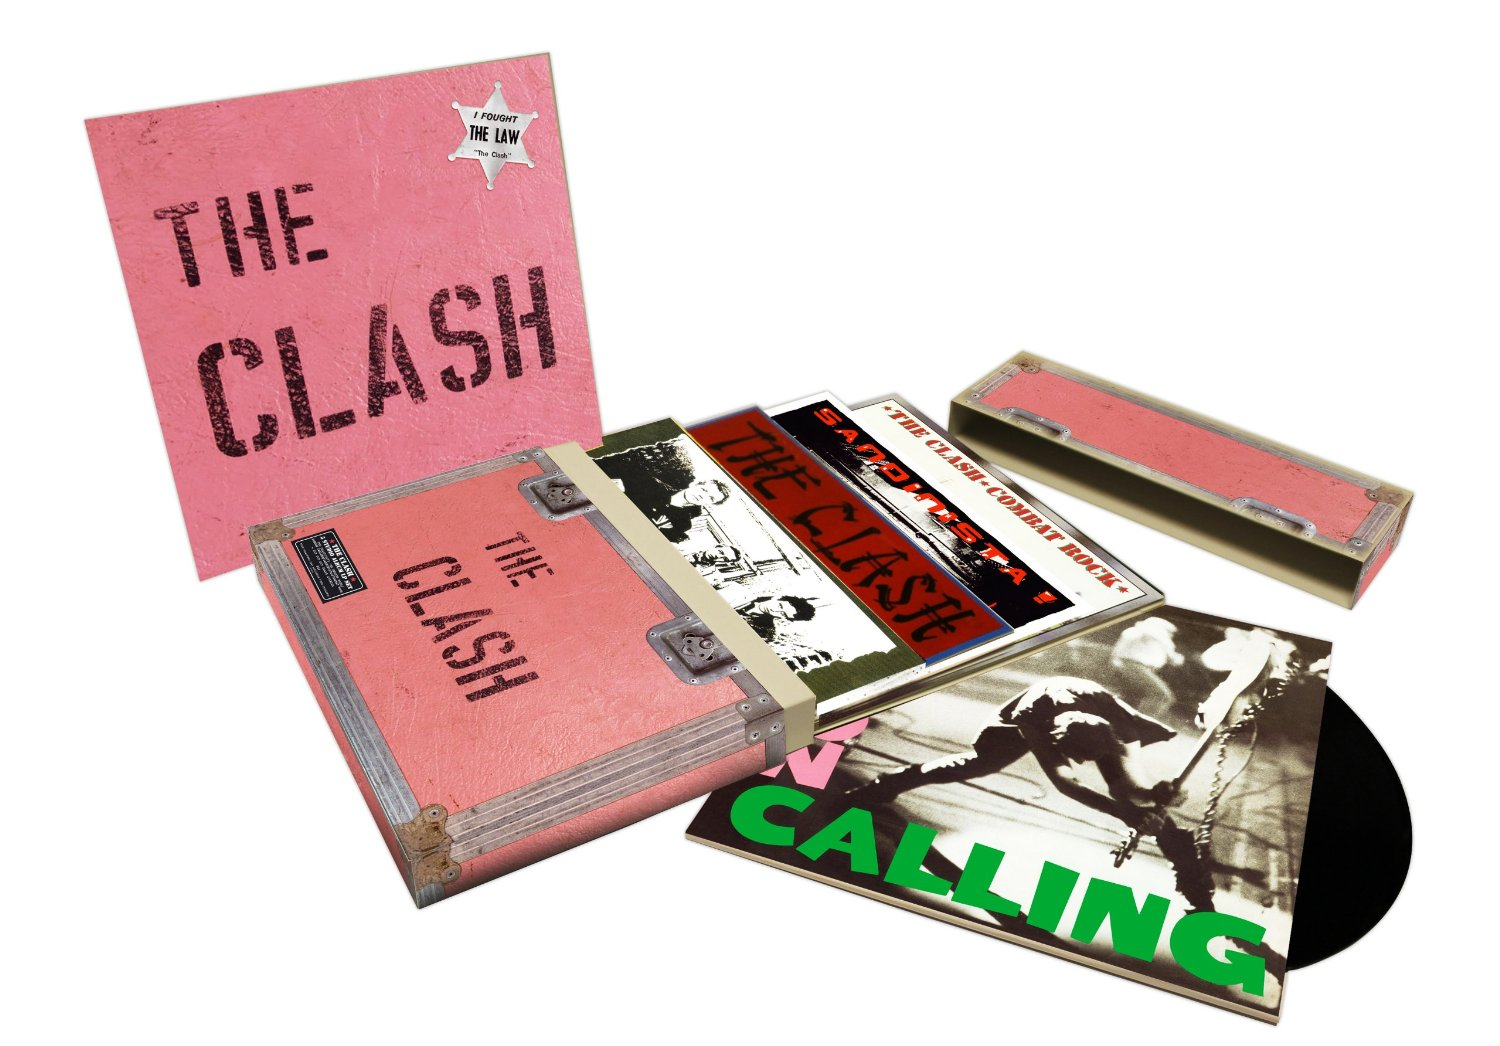 The Clash 5 Studio Albums box set